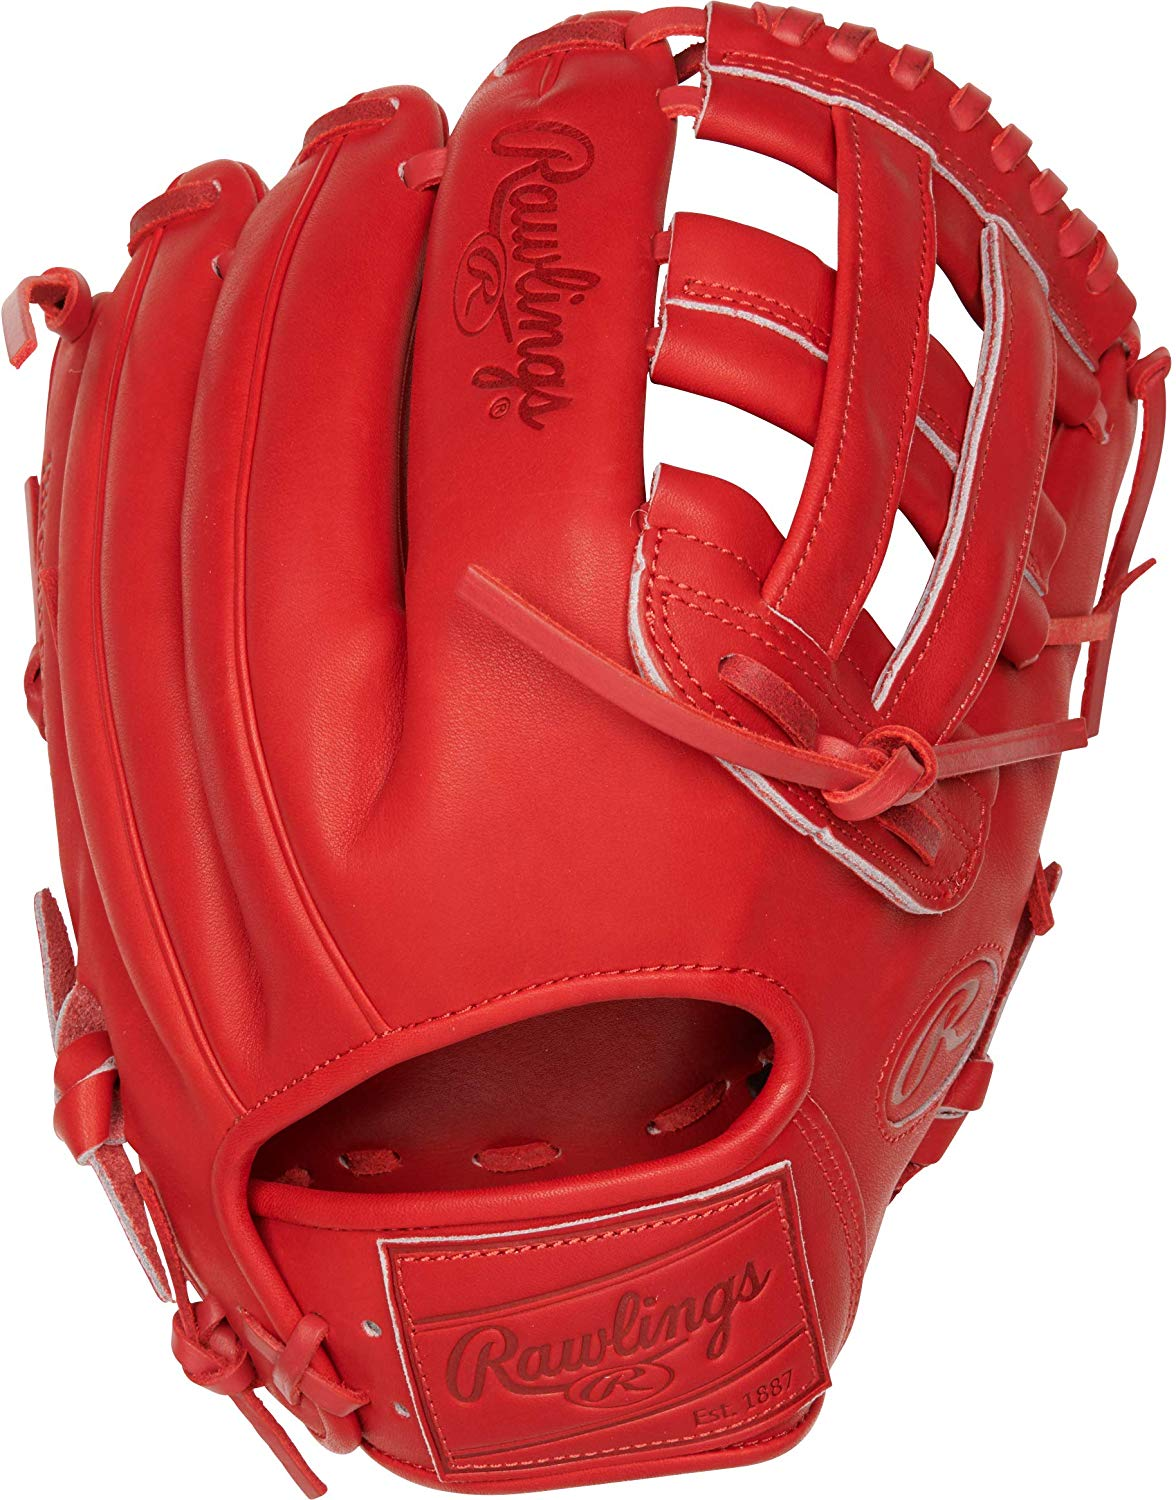 rawlings-pro-label-scarlet-baseball-glove-12-25-right-hand-throw PROKP17-6S-RightHandThrow  083321691409 <p>12.25 pattern Limited Edition Kris Bryant Pattern Indent Stamping On Shell